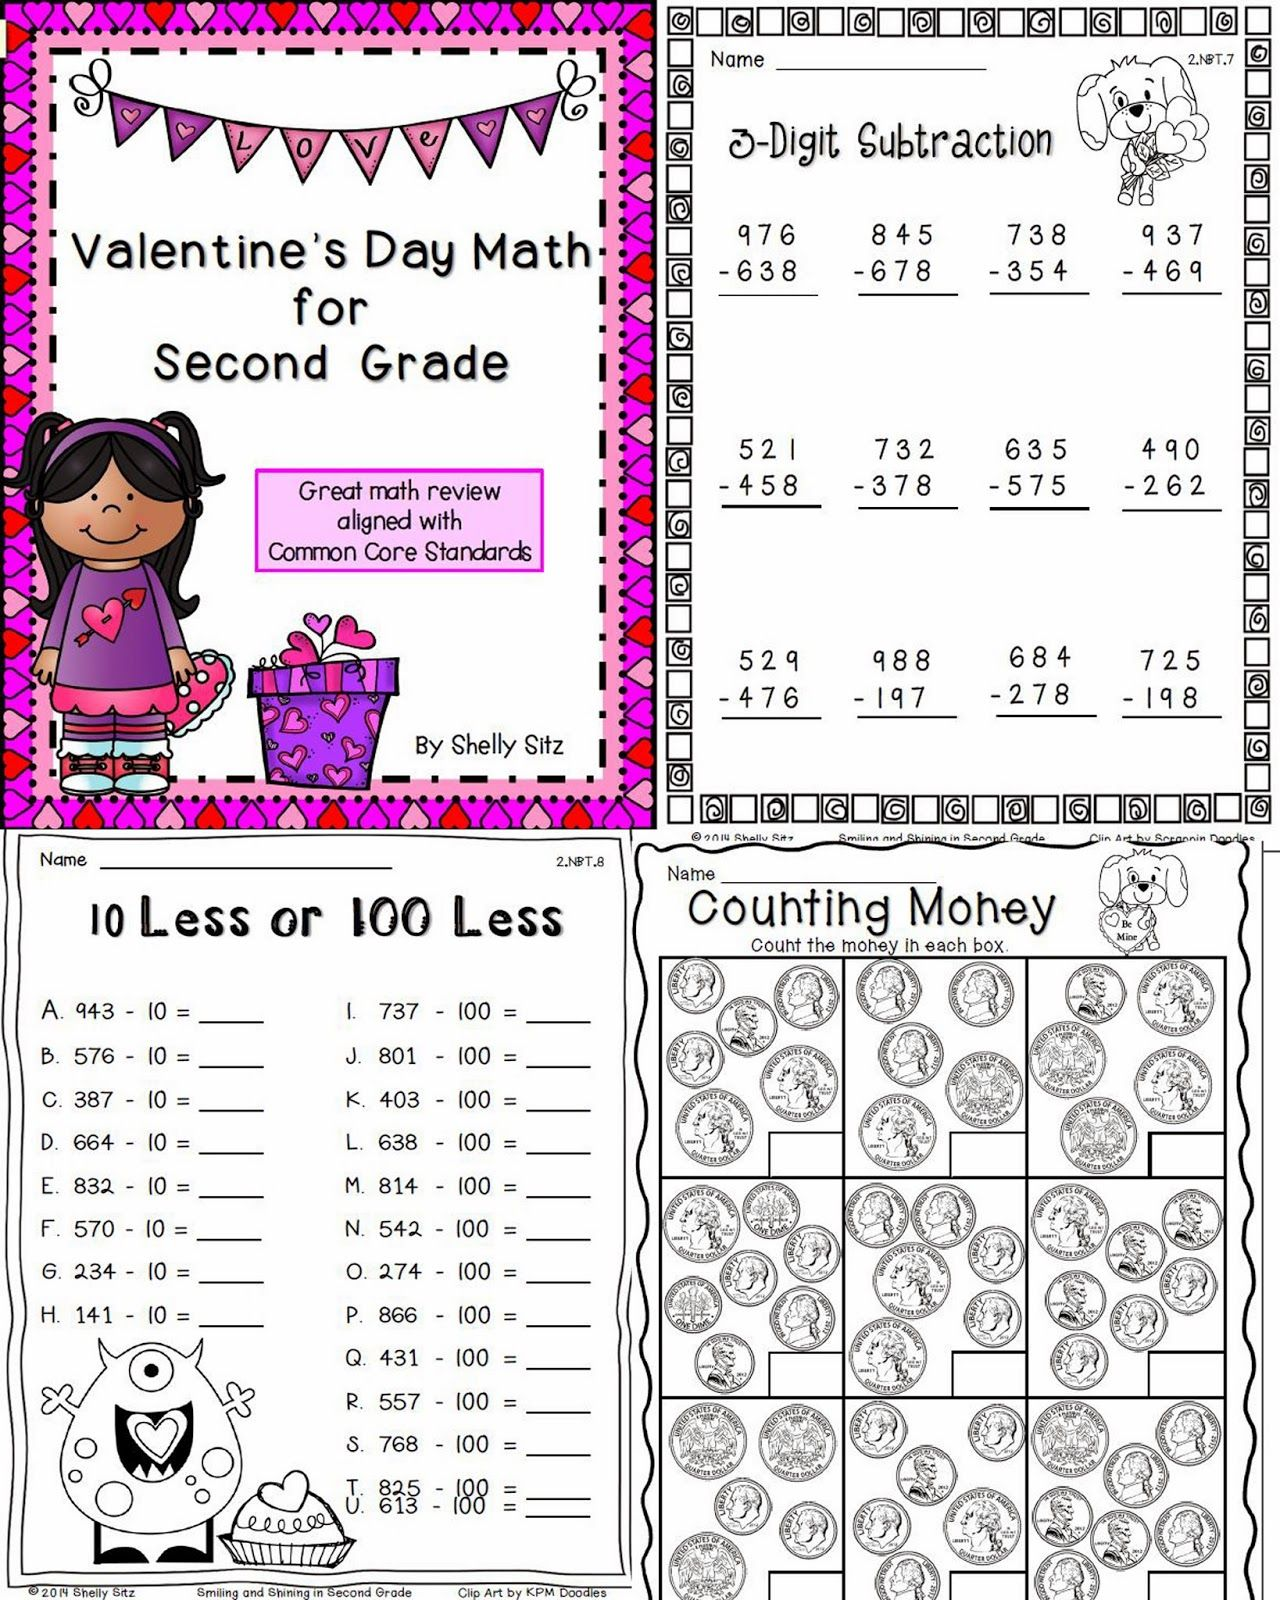 smiling and shining in second grade valentine 39 s math for second grade math tareas. Black Bedroom Furniture Sets. Home Design Ideas